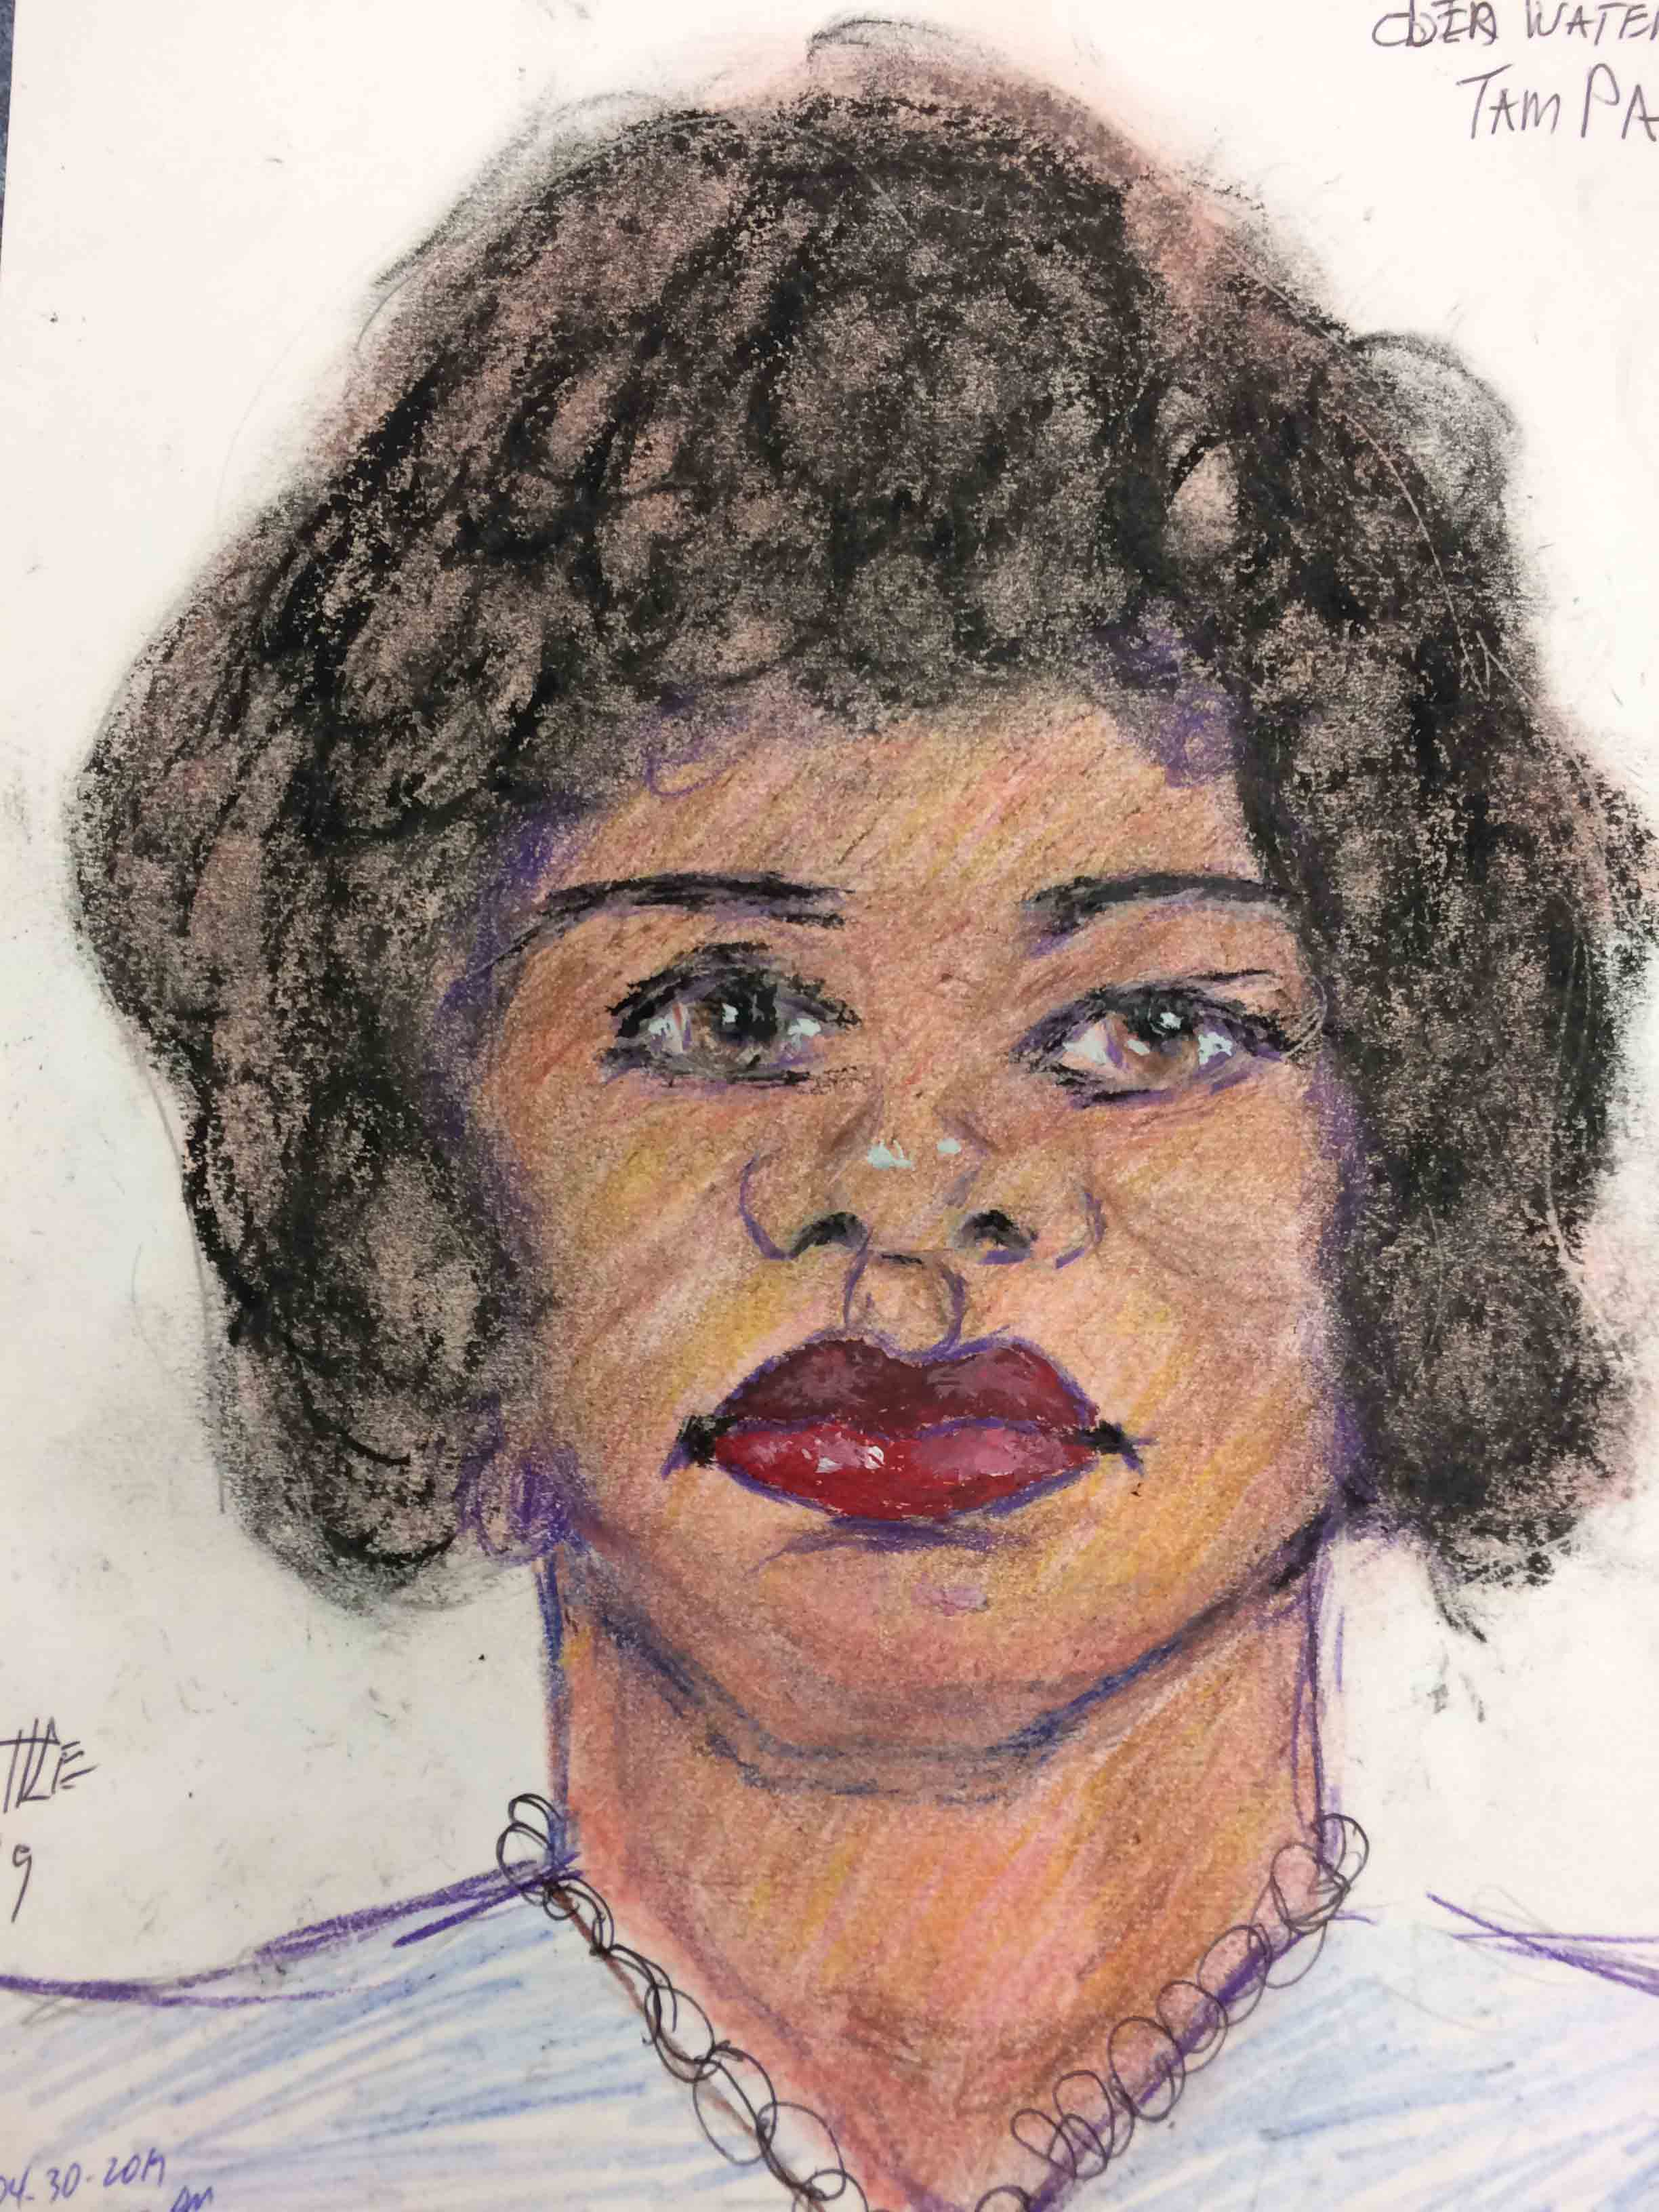 Samuel Little Drawing of Black Female Victim (Killed in 1977 or 1978, Plant City, Florida)